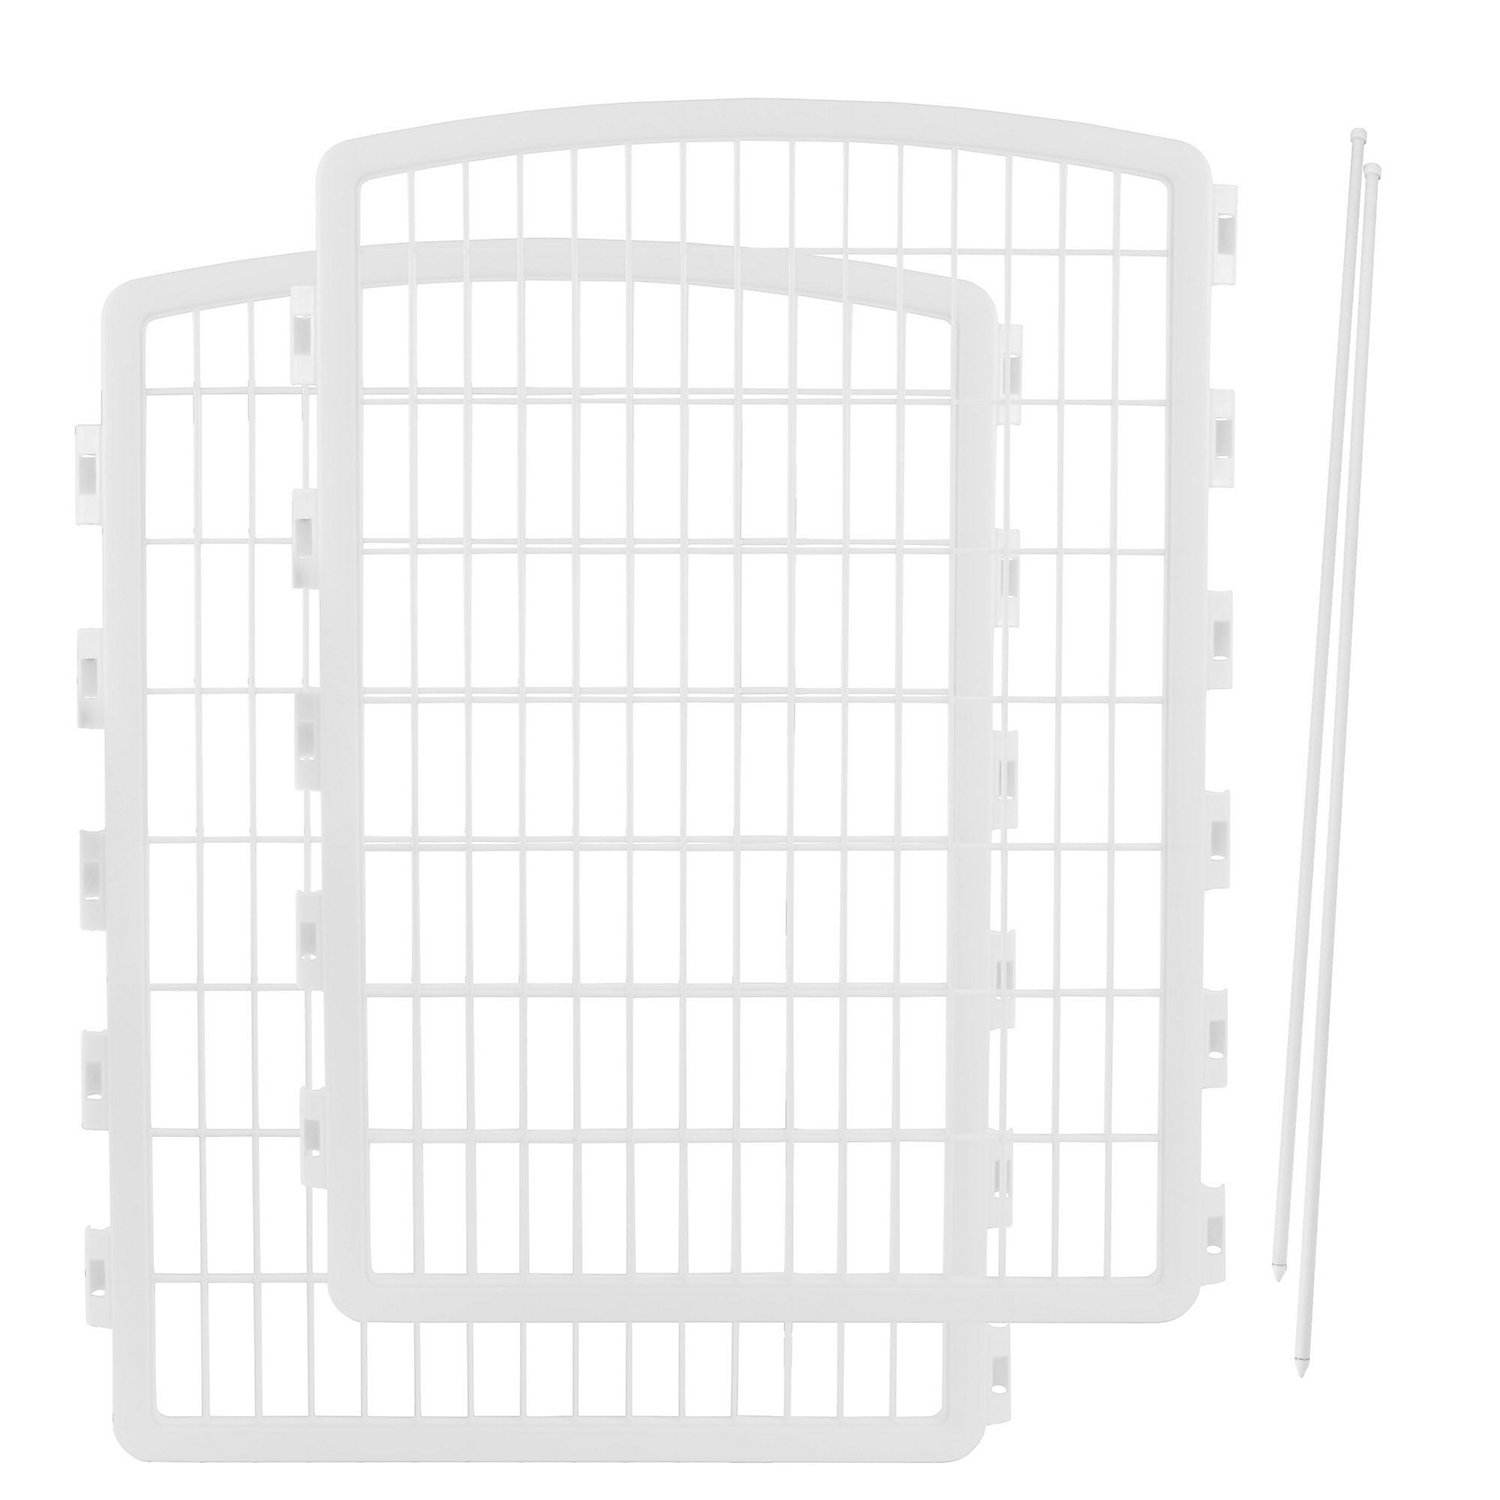 Iris White Two Panel Add On For Four Panel Containment And Exercise Pet Pen, 26.3 L X 34.3 H